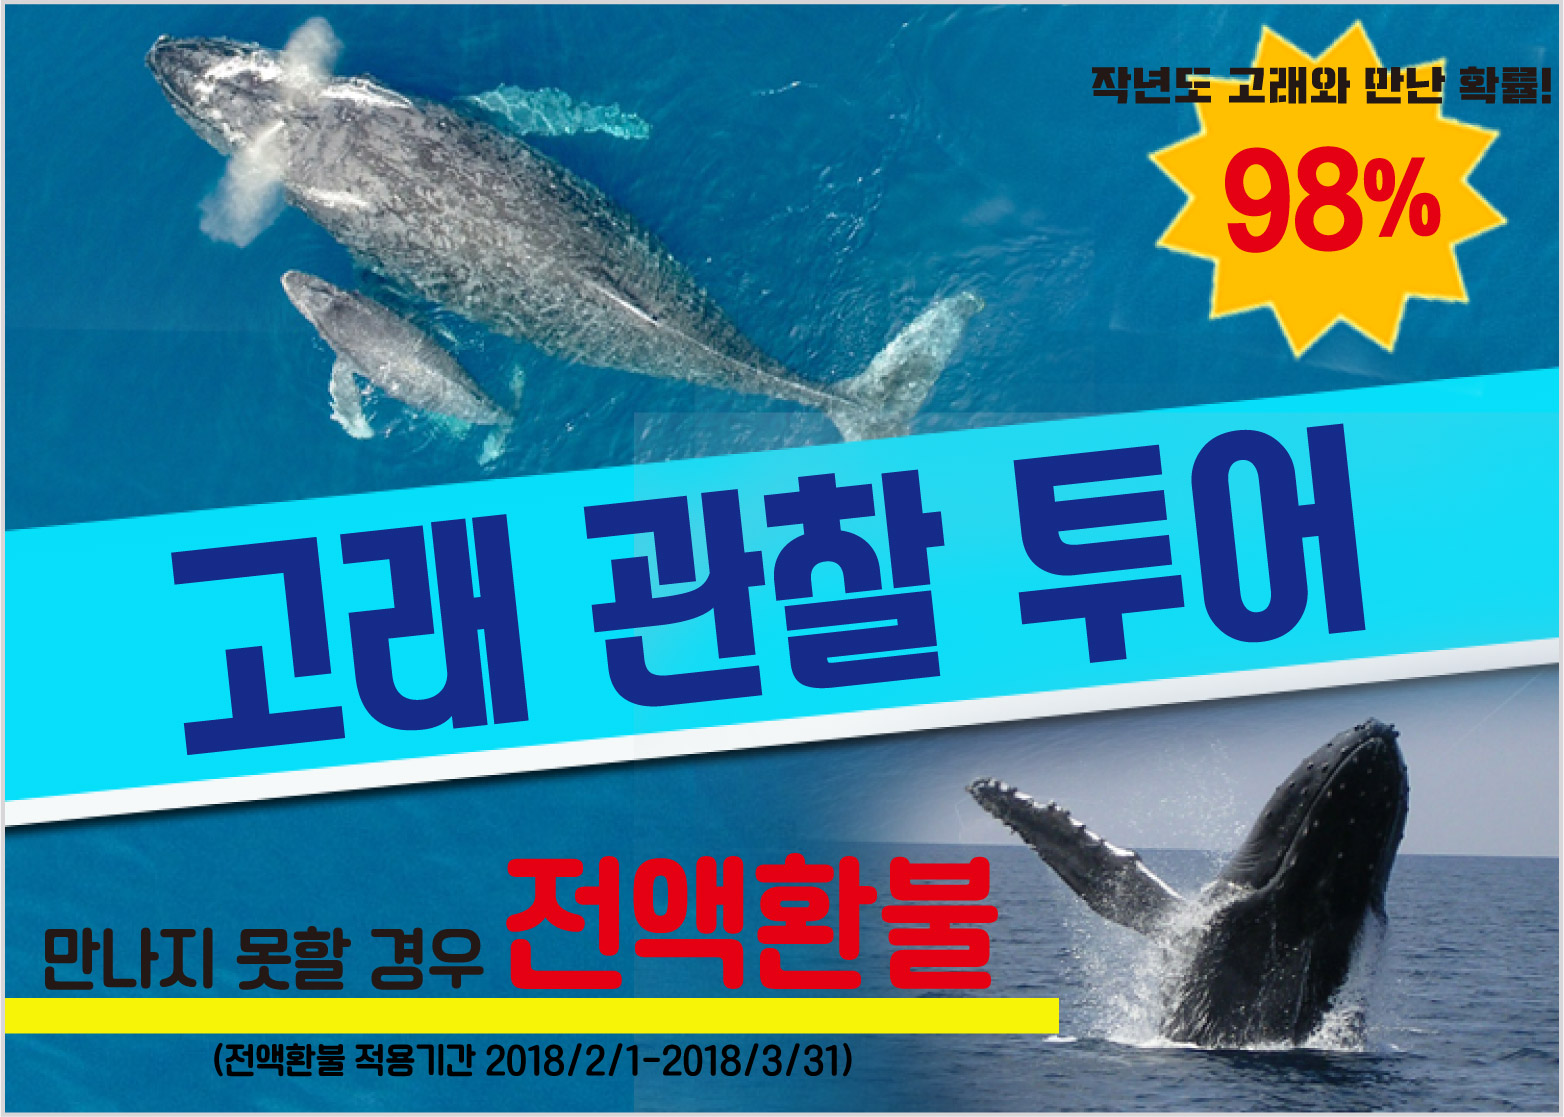 :enPowerful whale watching in Okinawa! 2017-2018 during the reception::zh强大的观鲸在冲绳!期间接待2017-2018::ko오키나와에서 박력의 고래! 2017 ~ 2018 접수 중: